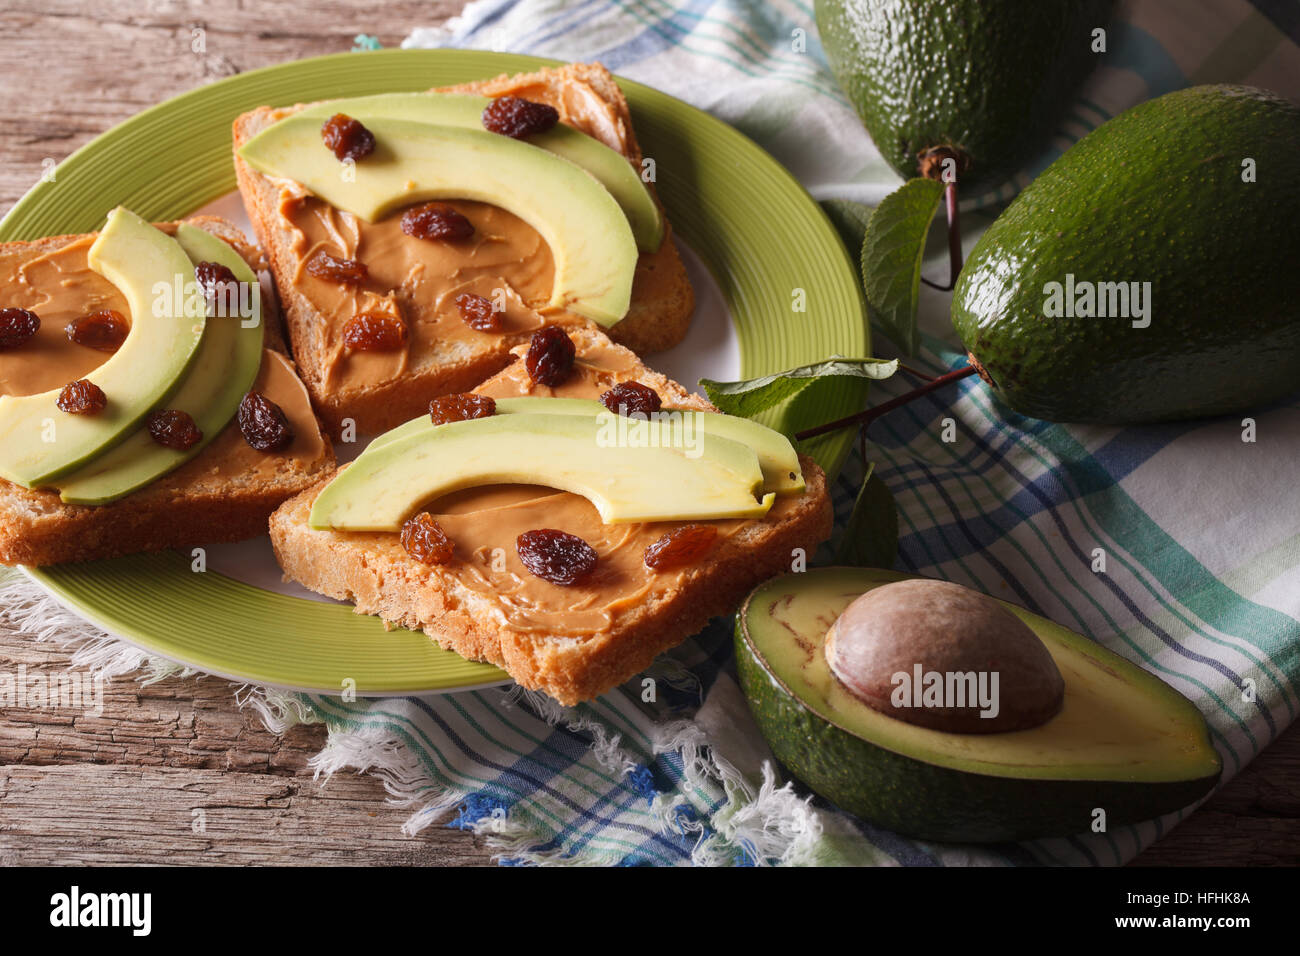 Sandwiches with peanut butter and ripe avocado close-up on a plate. horizontal - Stock Image